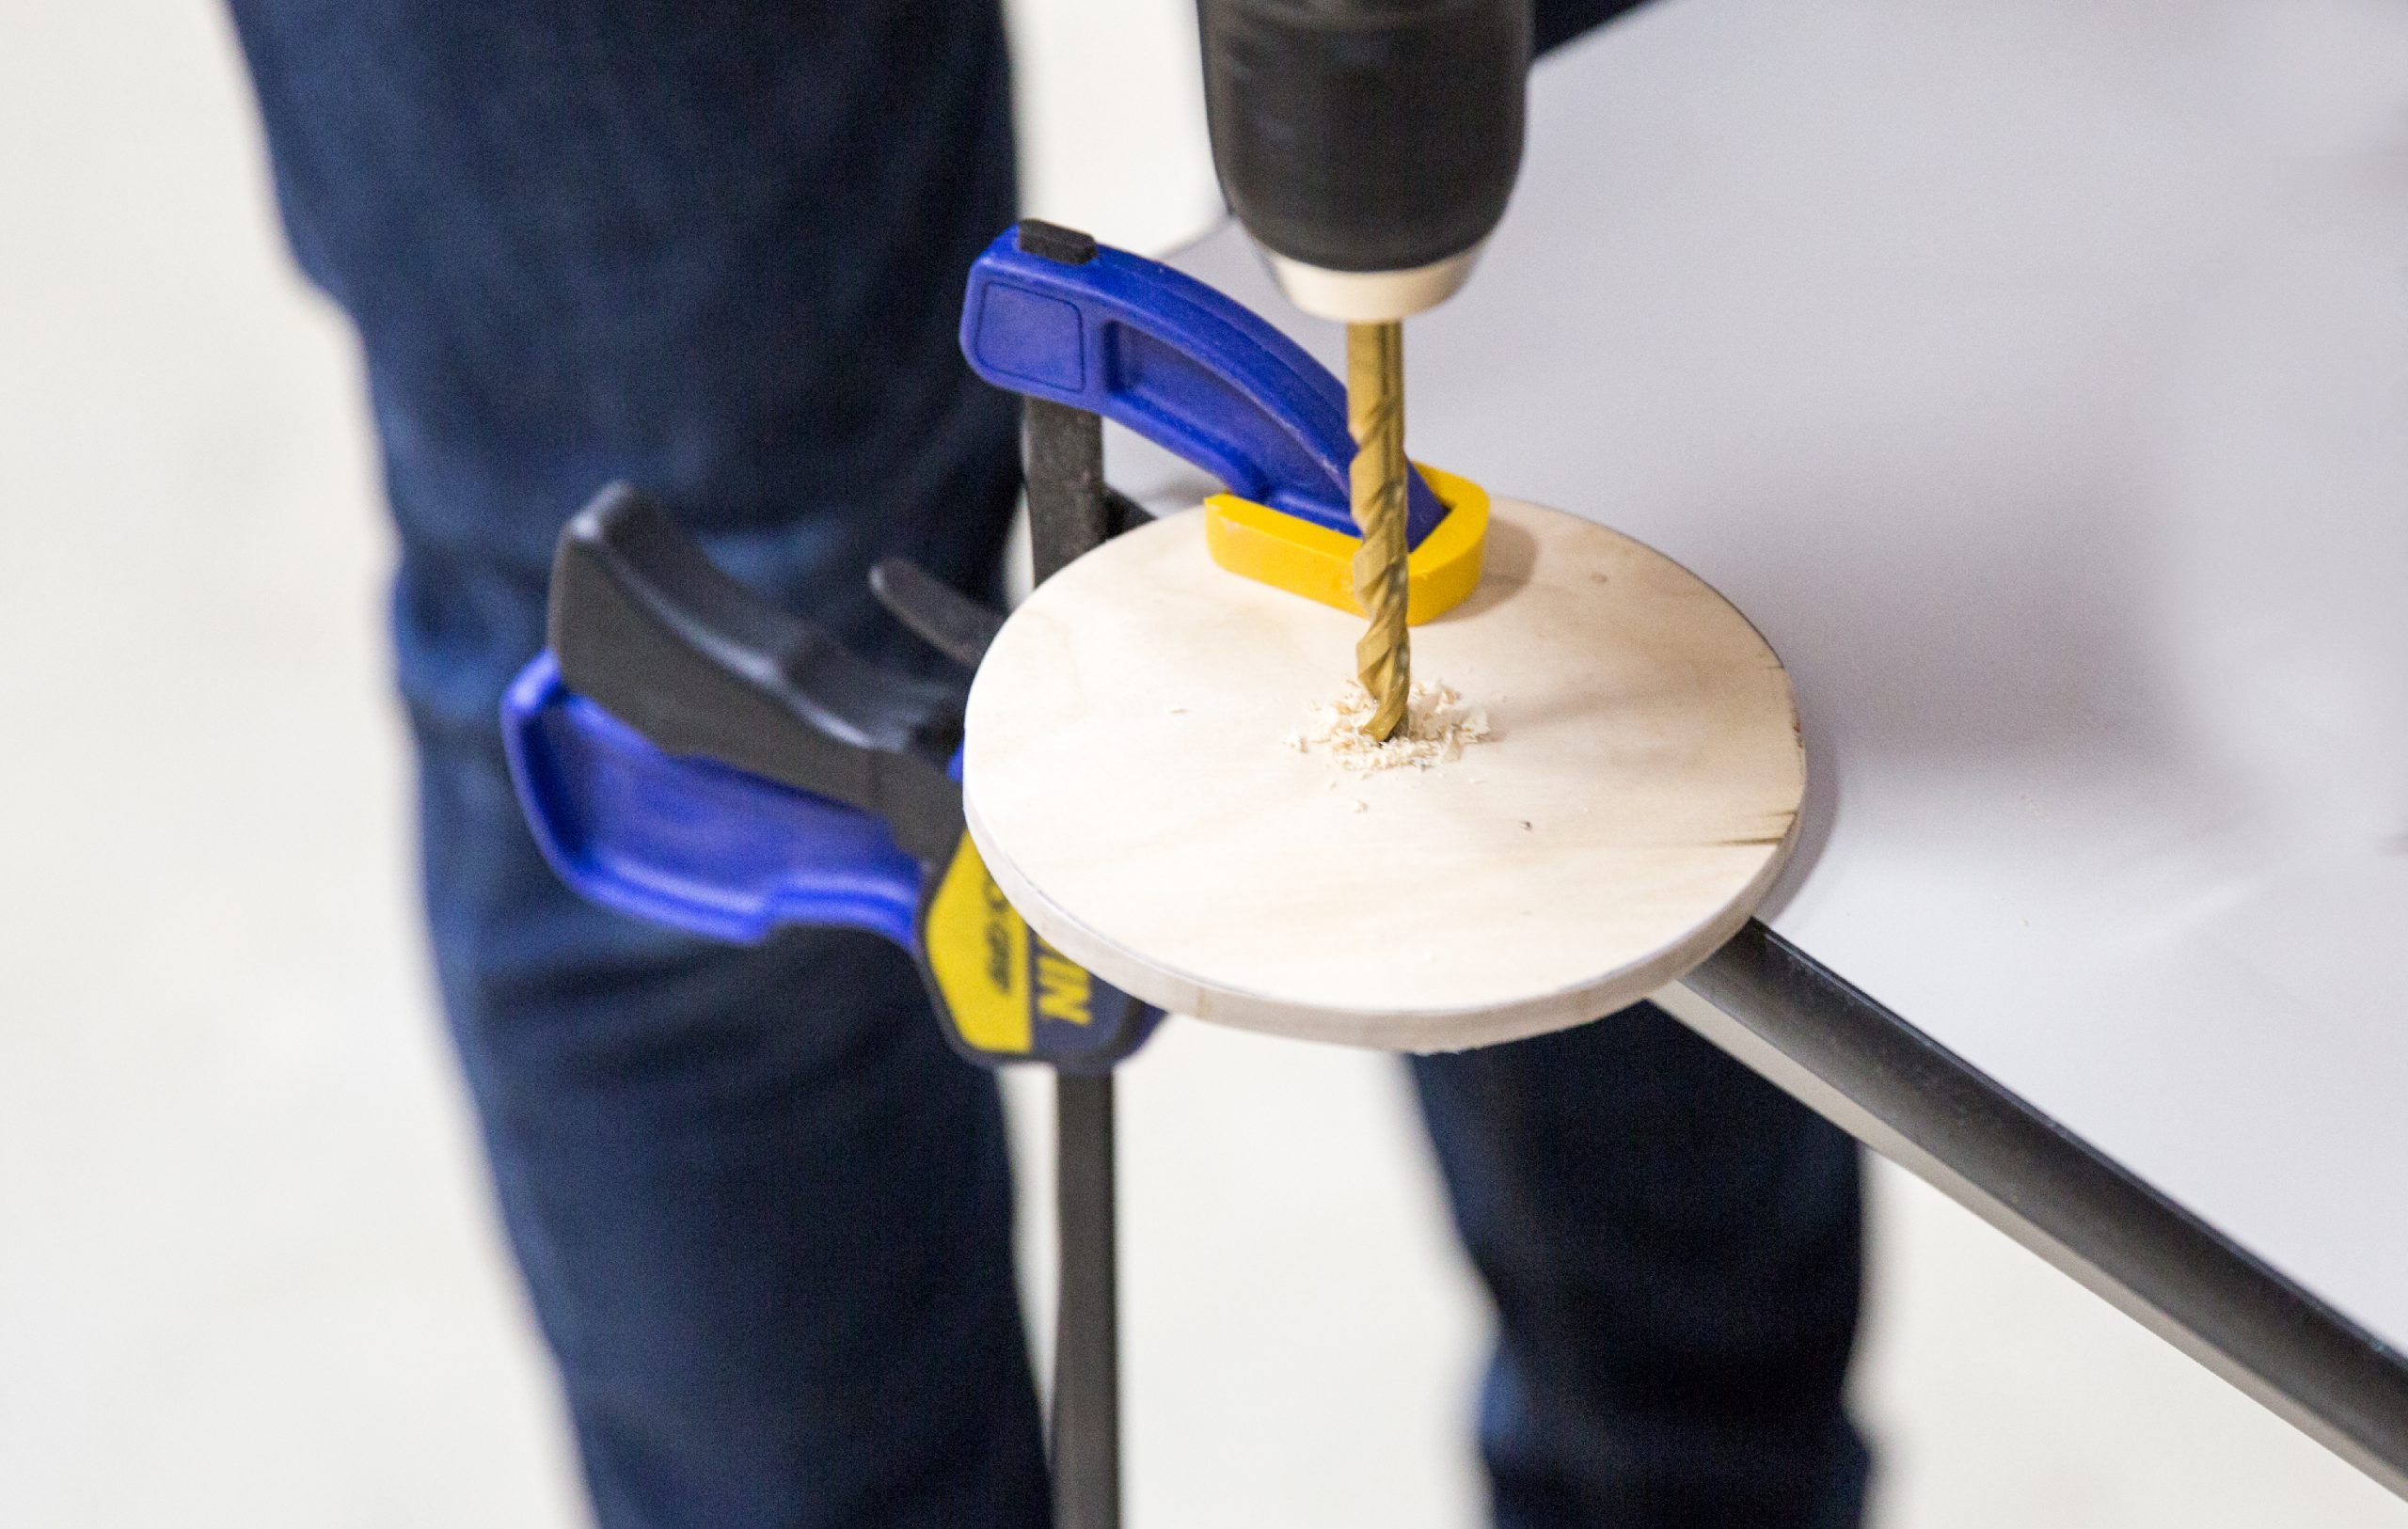 Drilling a hole in the center of the circle.